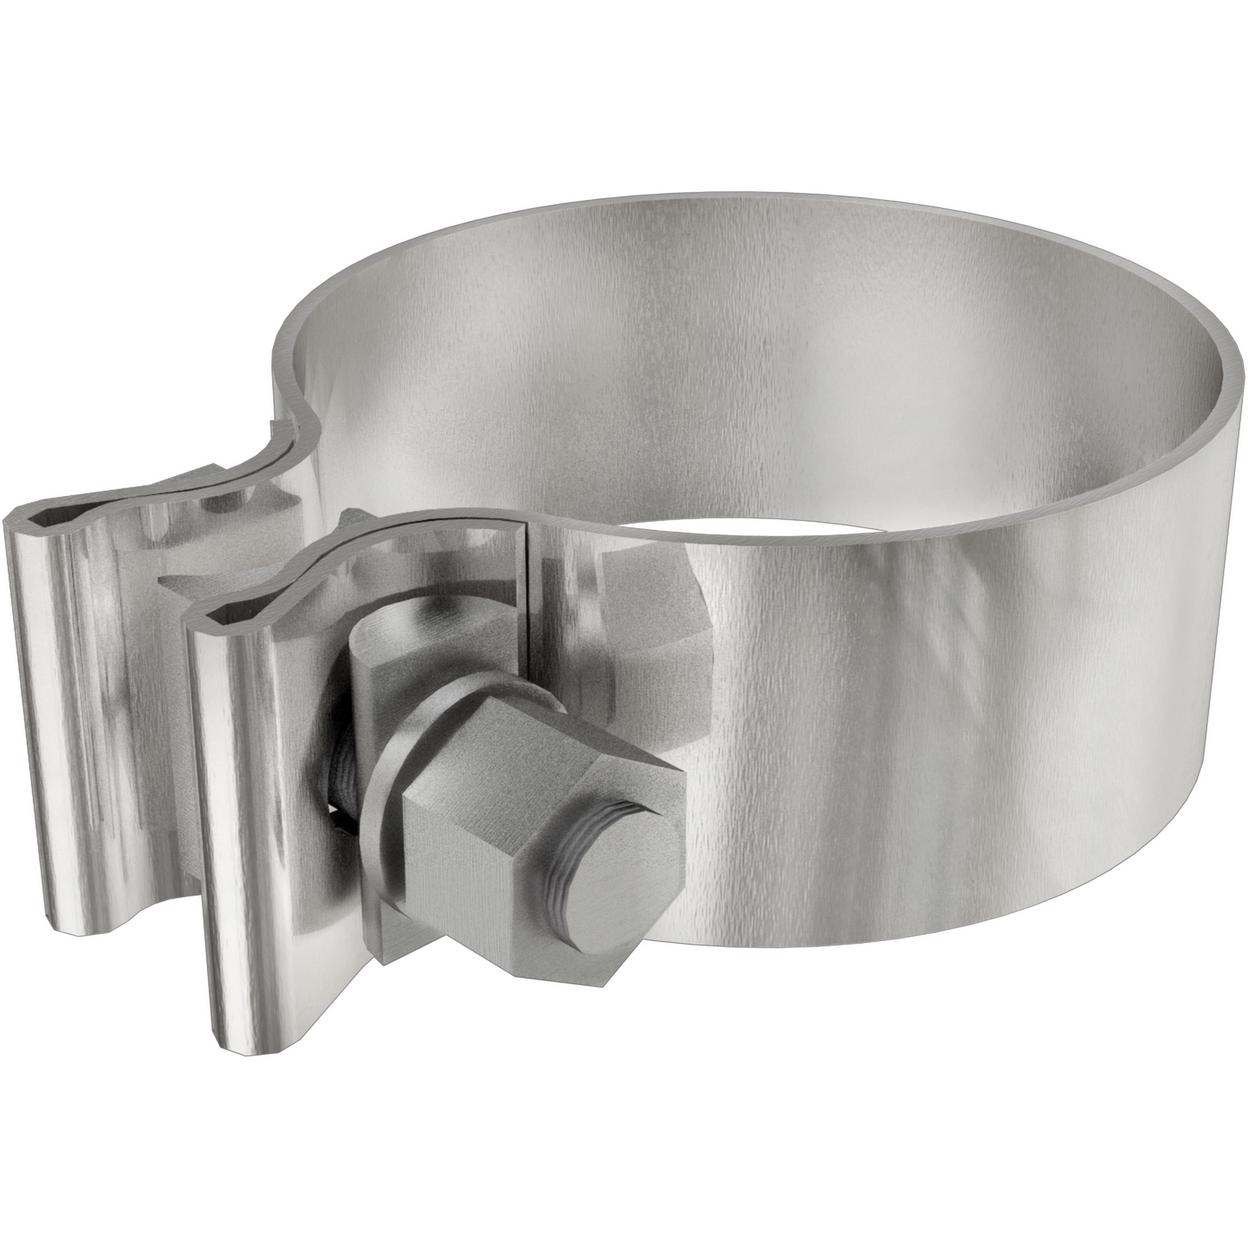 Lap Joint Band Clamp - 2.00in.